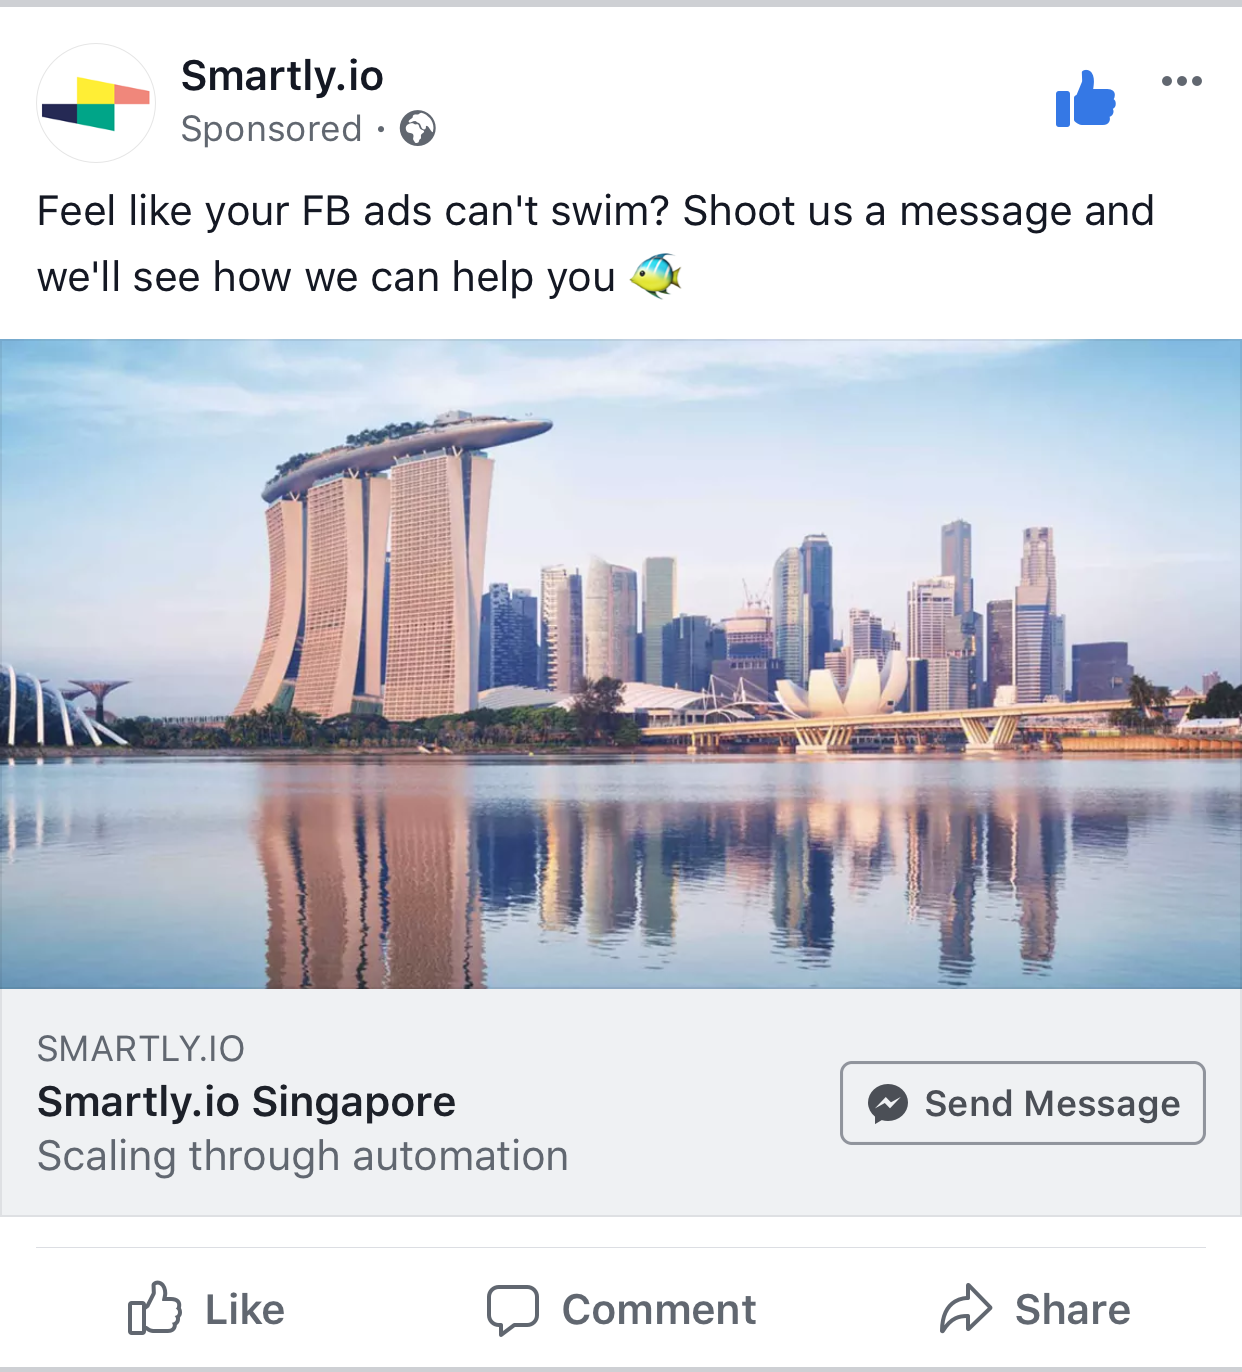 2018-02-15_smartly_singapore_send_message_ad.png